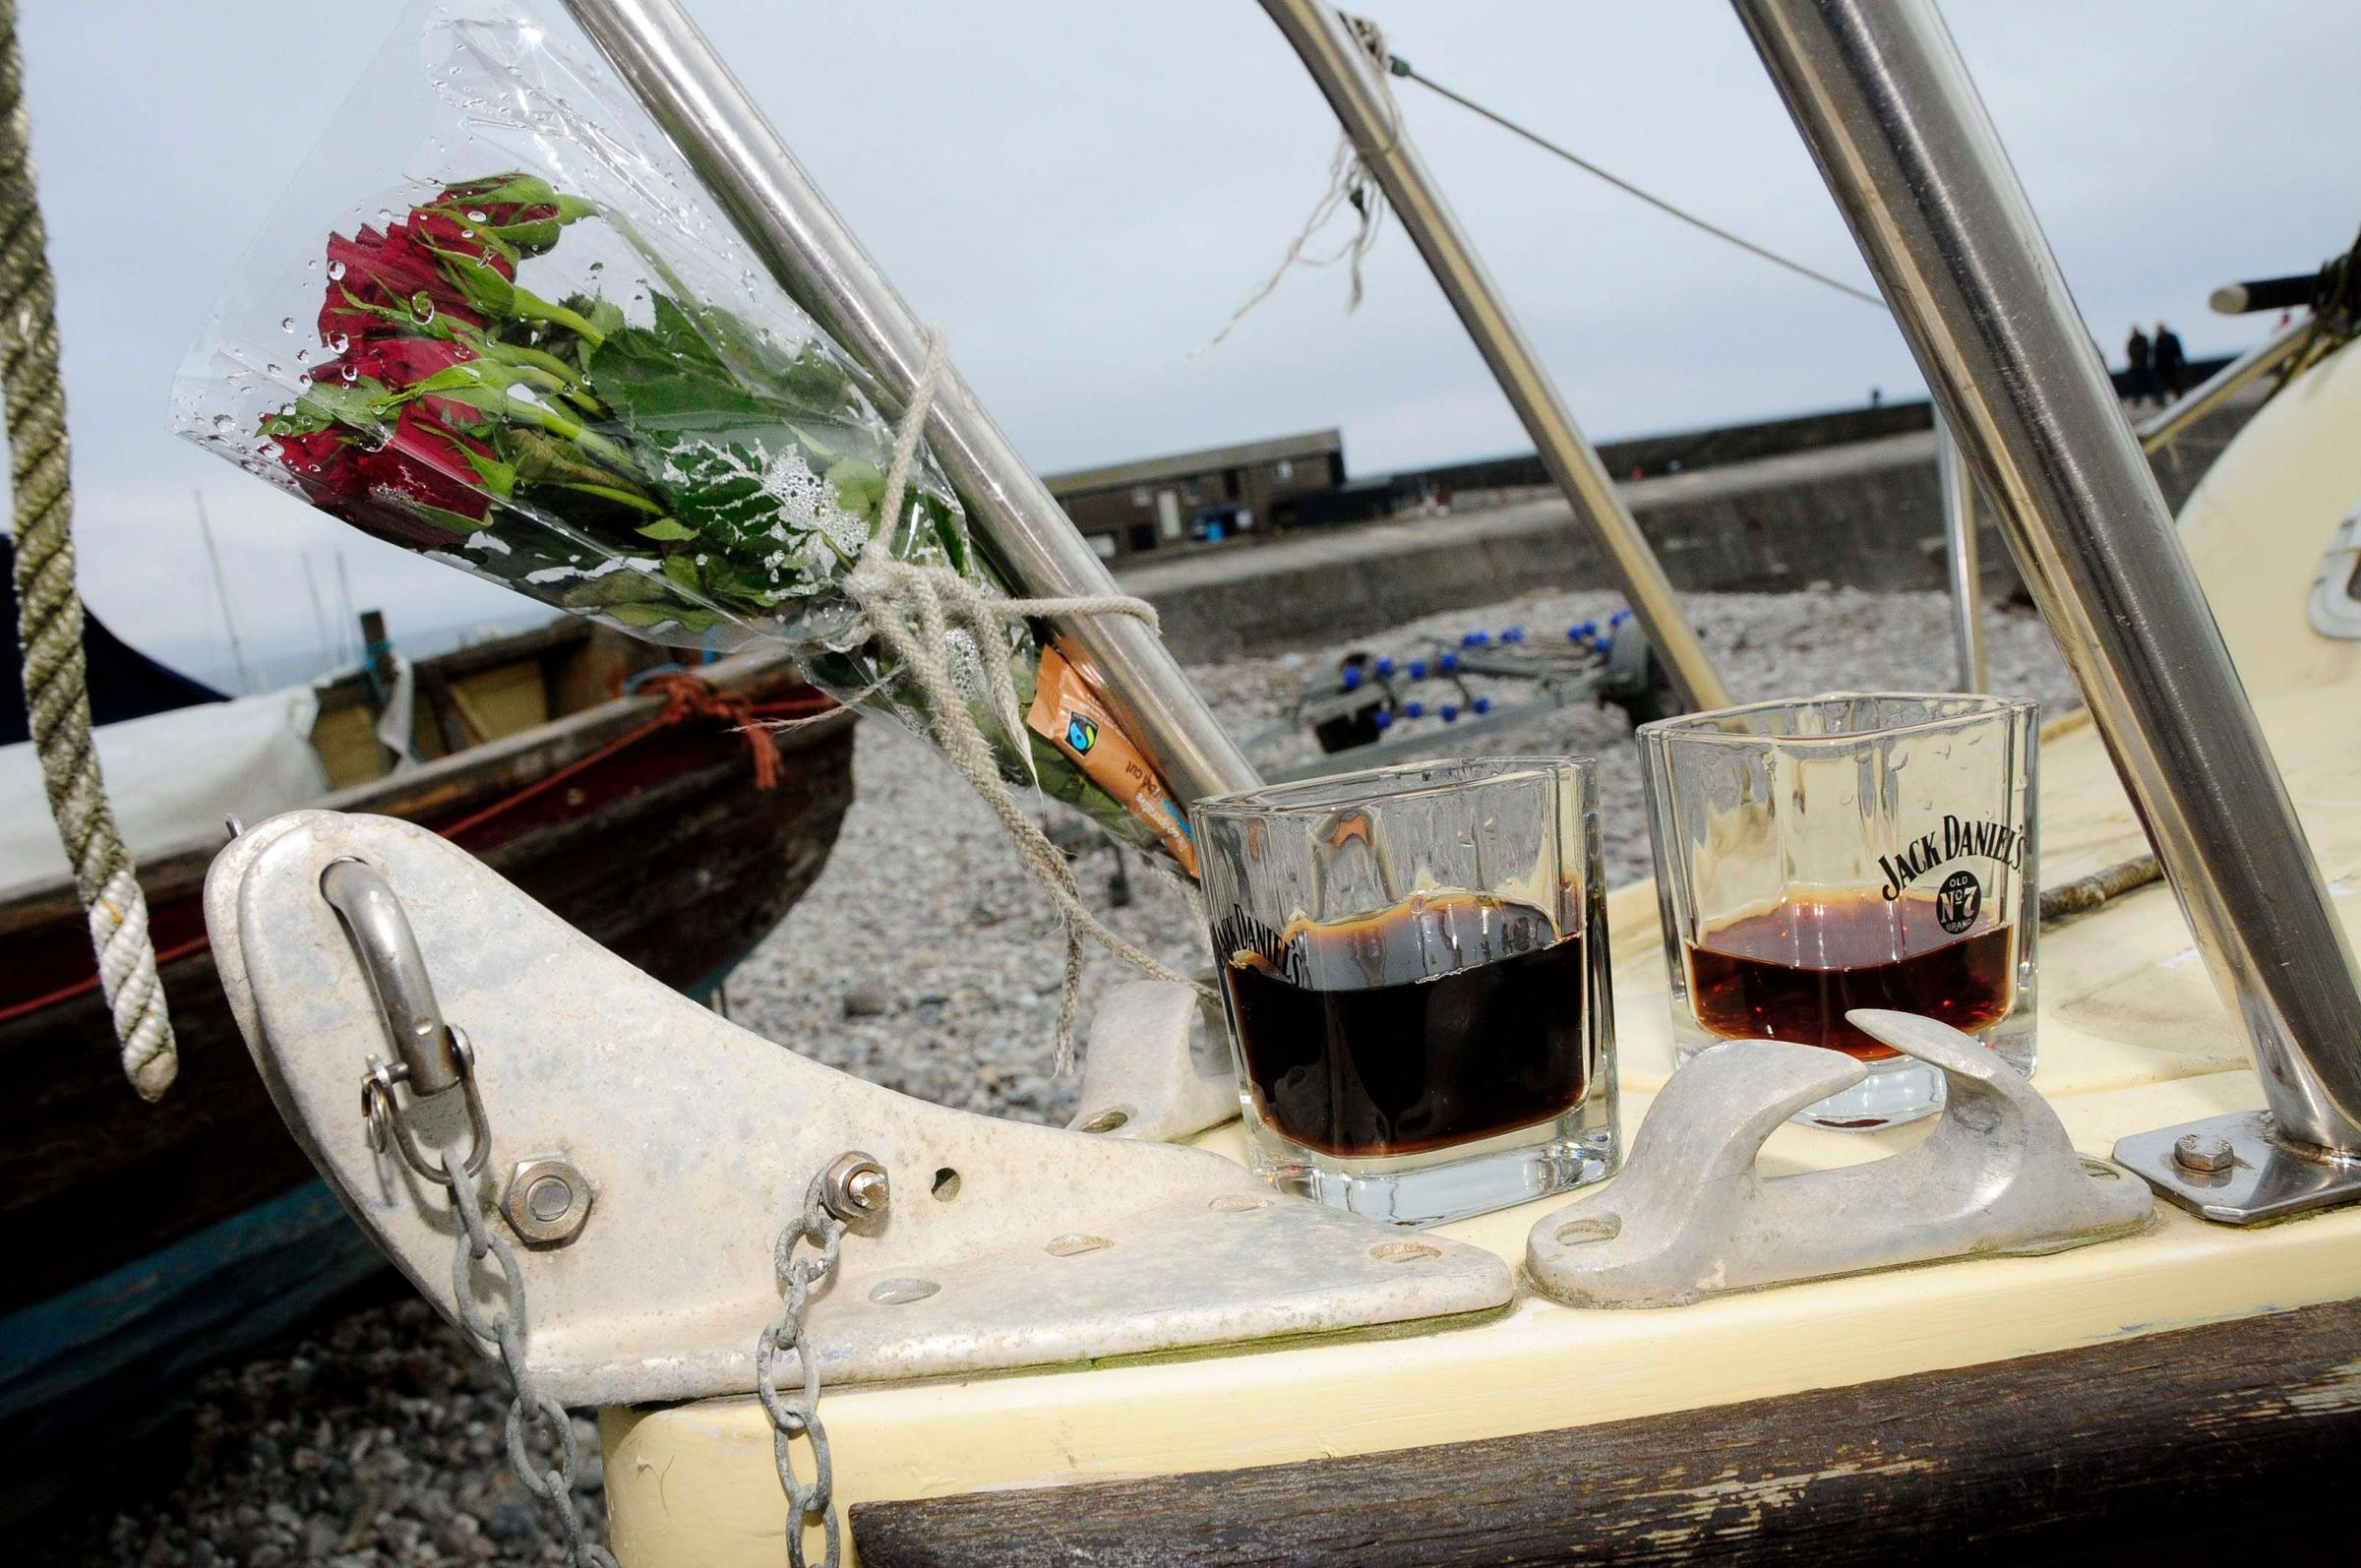 Ken Walton's boat, the Mudlark, with floral tributes left by friends